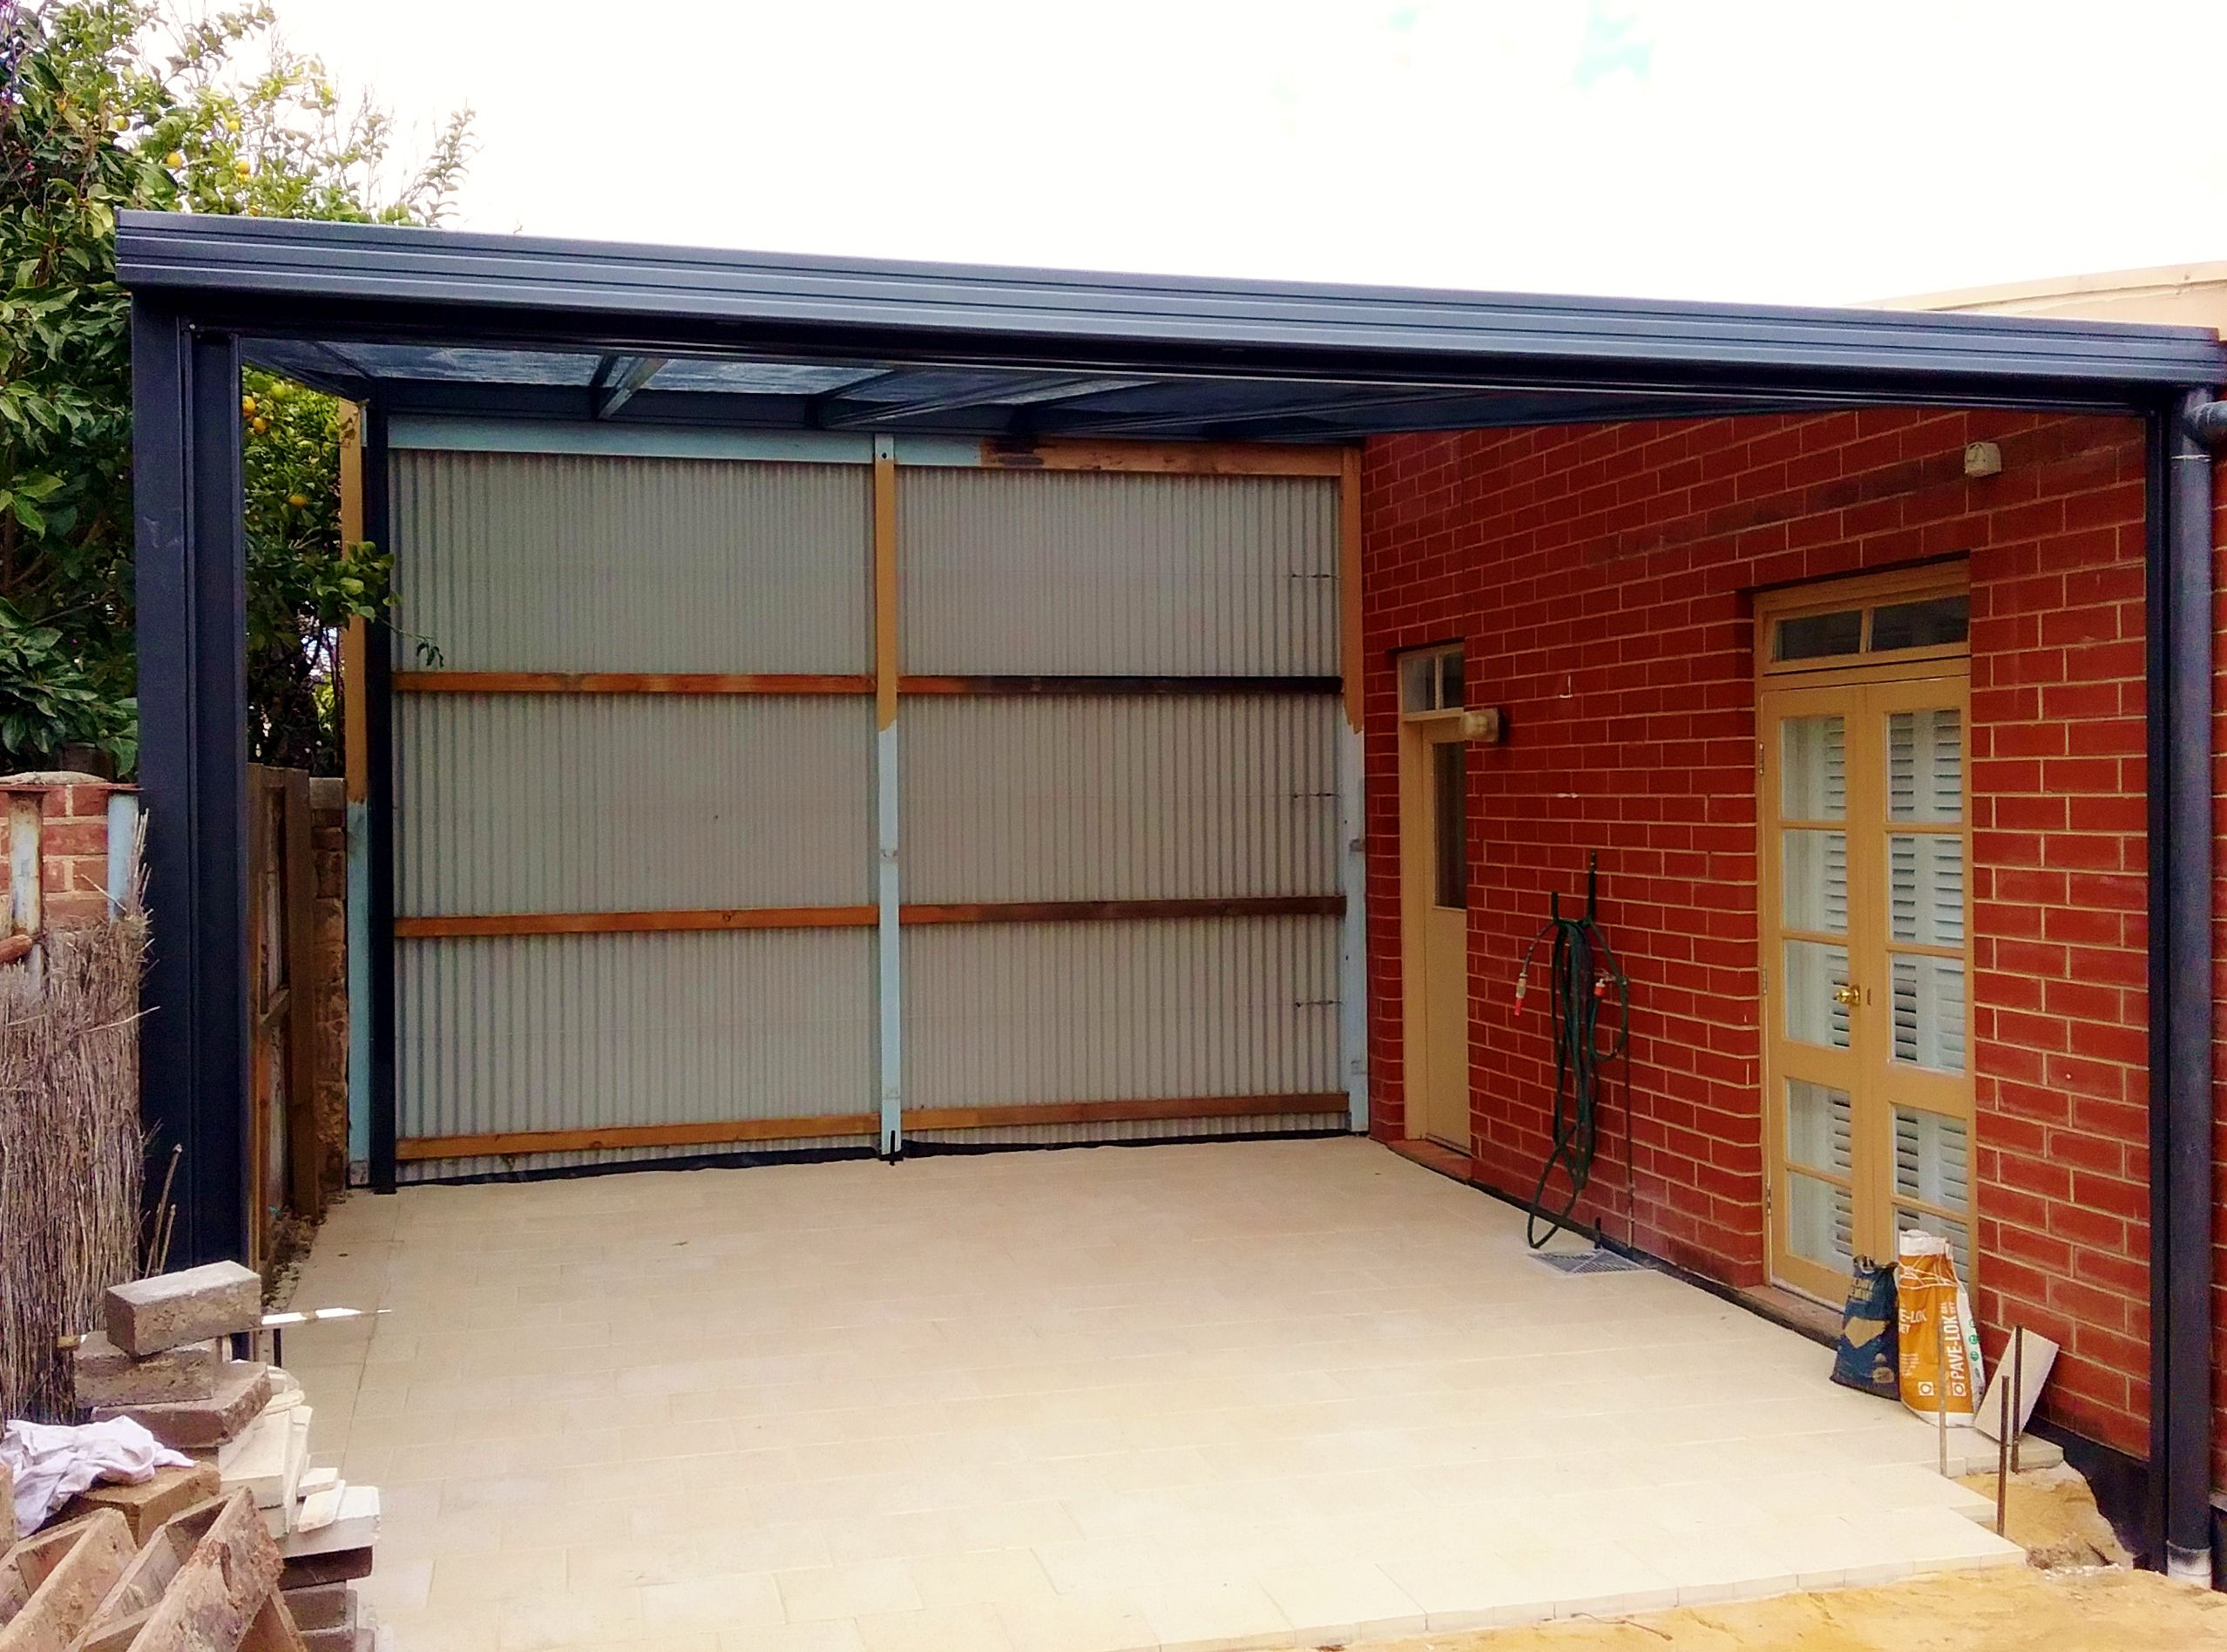 DMV Carport Designs With Roller Door And Wall Plastering Adelaide SA |  Carport | DMV Outdoor Solutions | Pinterest | Carport Designs, Roller Doors  And Doors